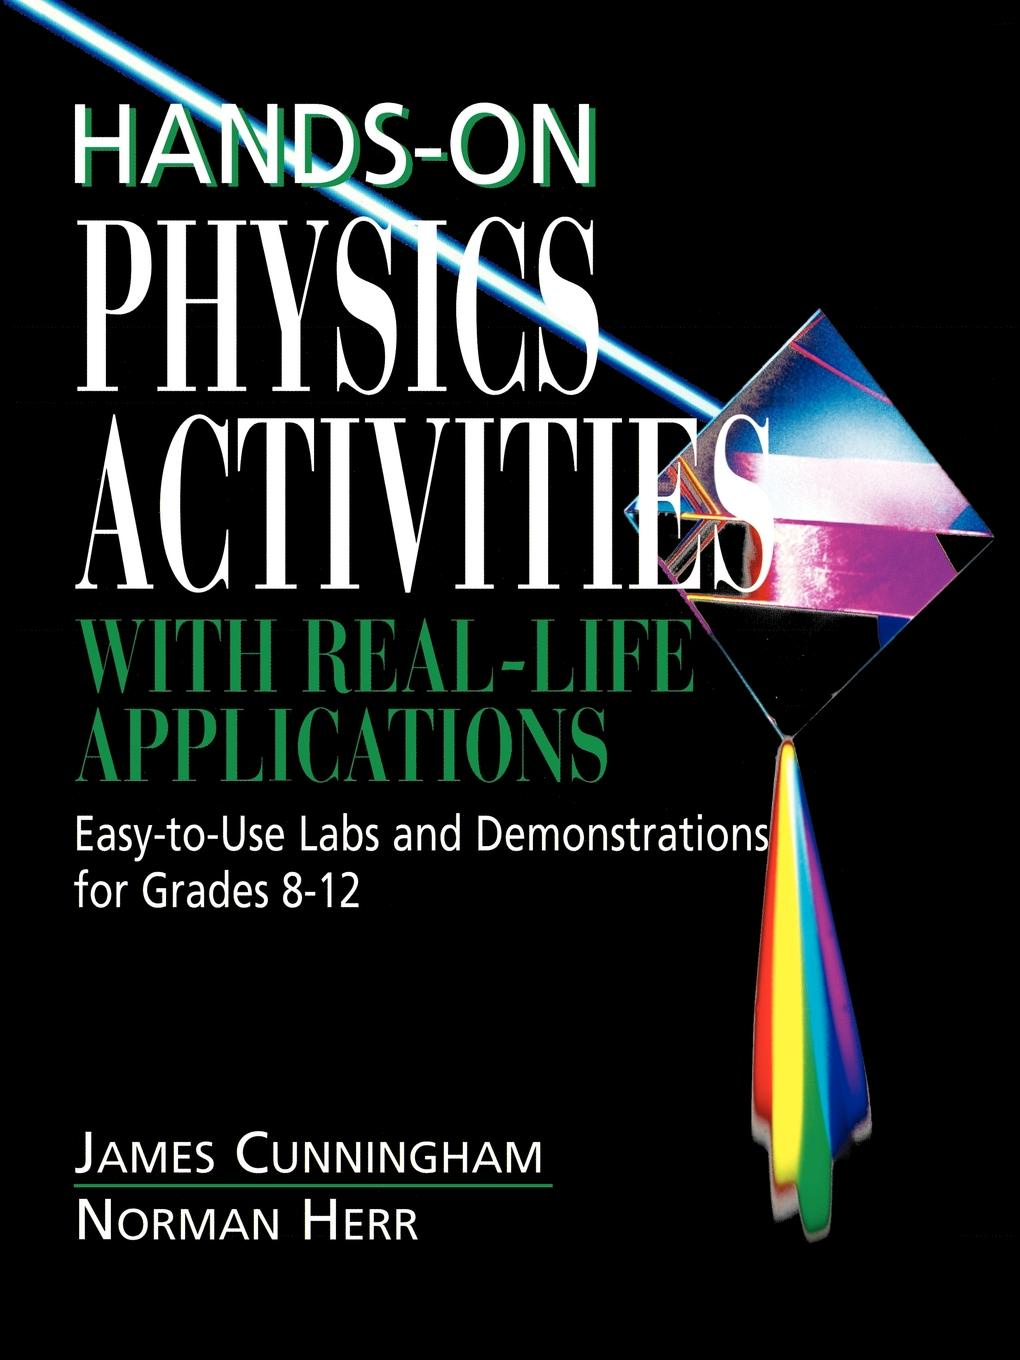 James Cunningham, Norman Herr Hands-On Physics Activities with Real-Life Applications. Easy-To-Use Labs and Demonstrations for Grades 8 - 12 erin muschla teaching the common core math standards with hands on activities grades 6 8